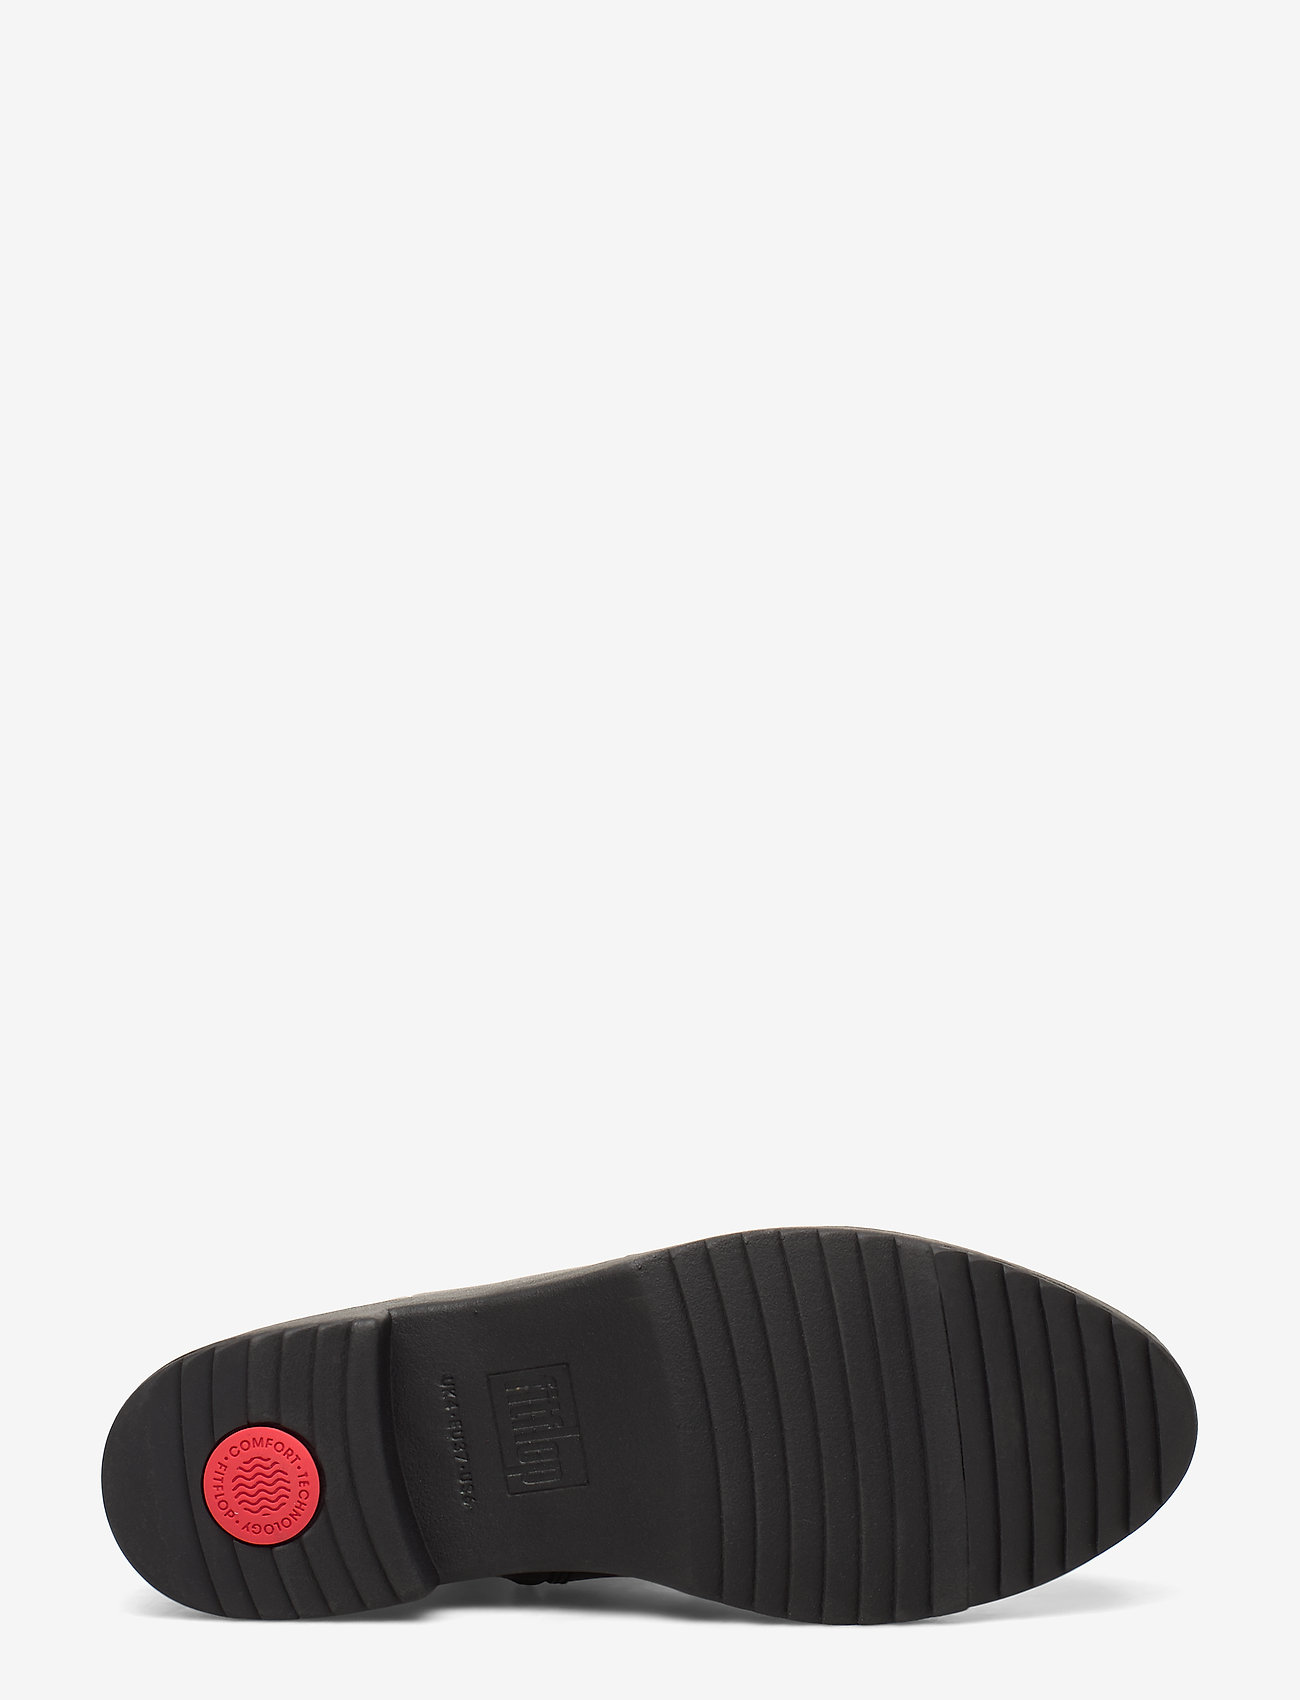 Maria Ankle Boots (All Black) - FitFlop